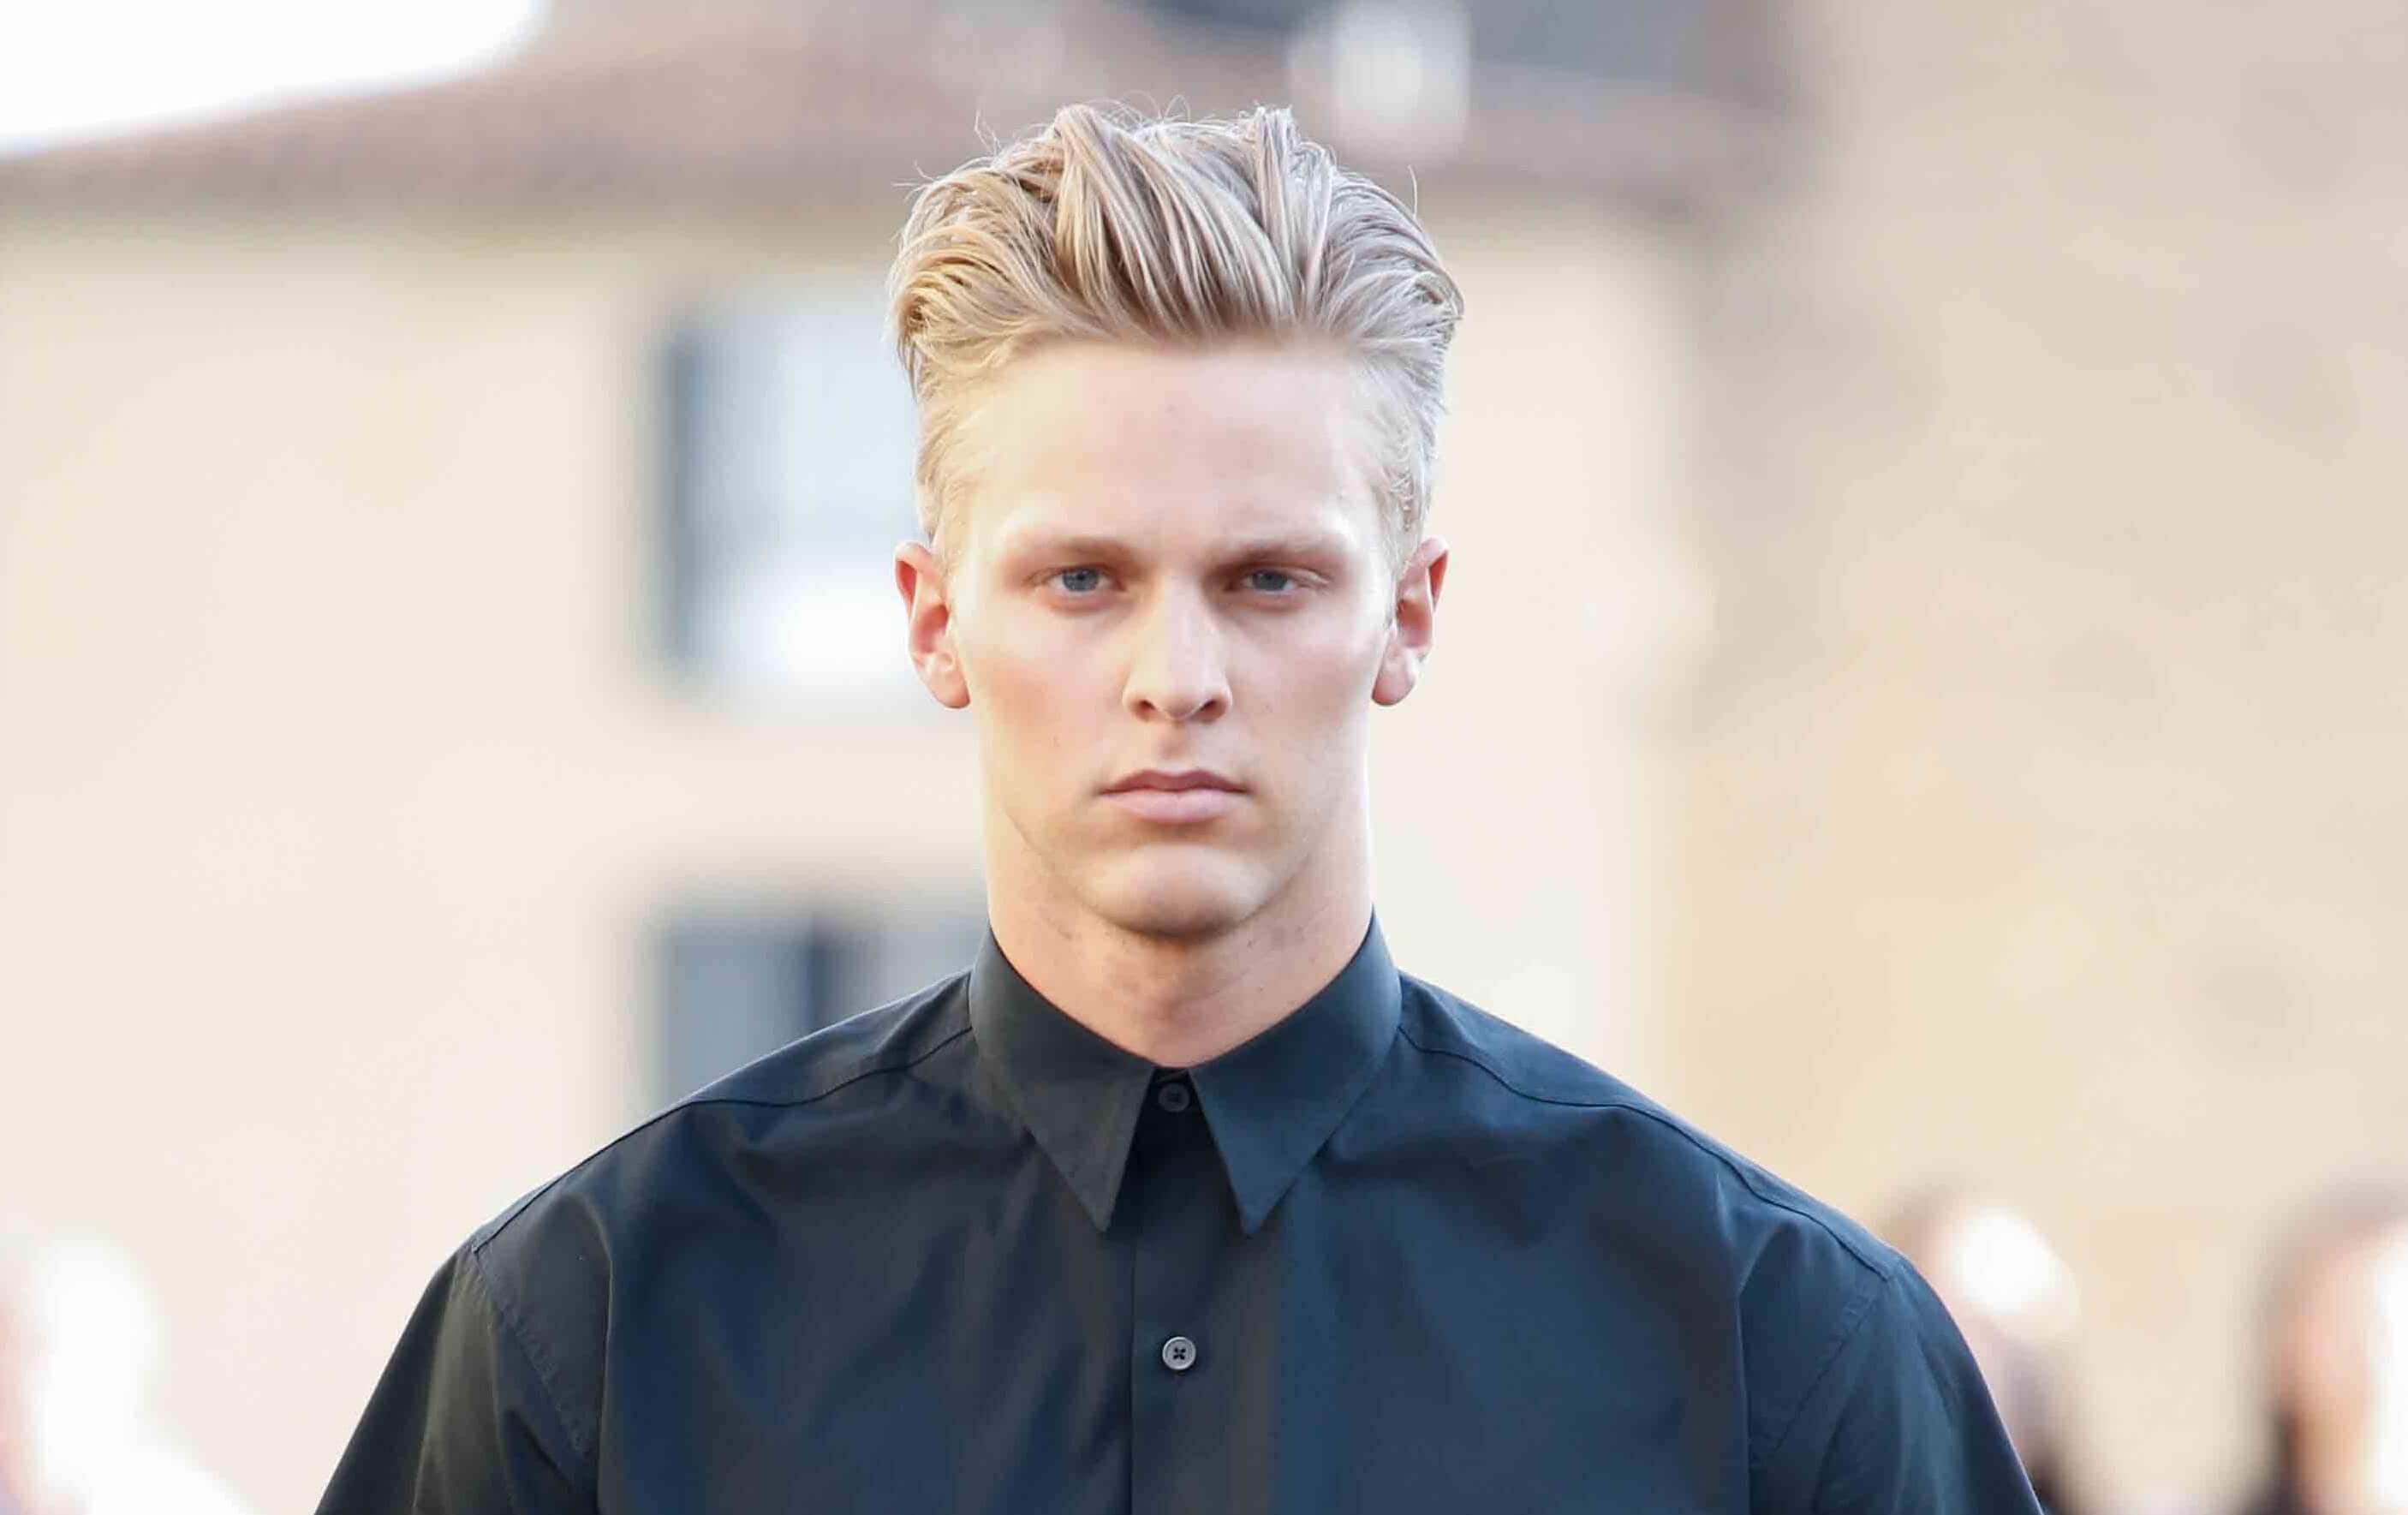 Mens Quiff | Mens Parted Hair Styles | Hairstyles for Men Pompadour